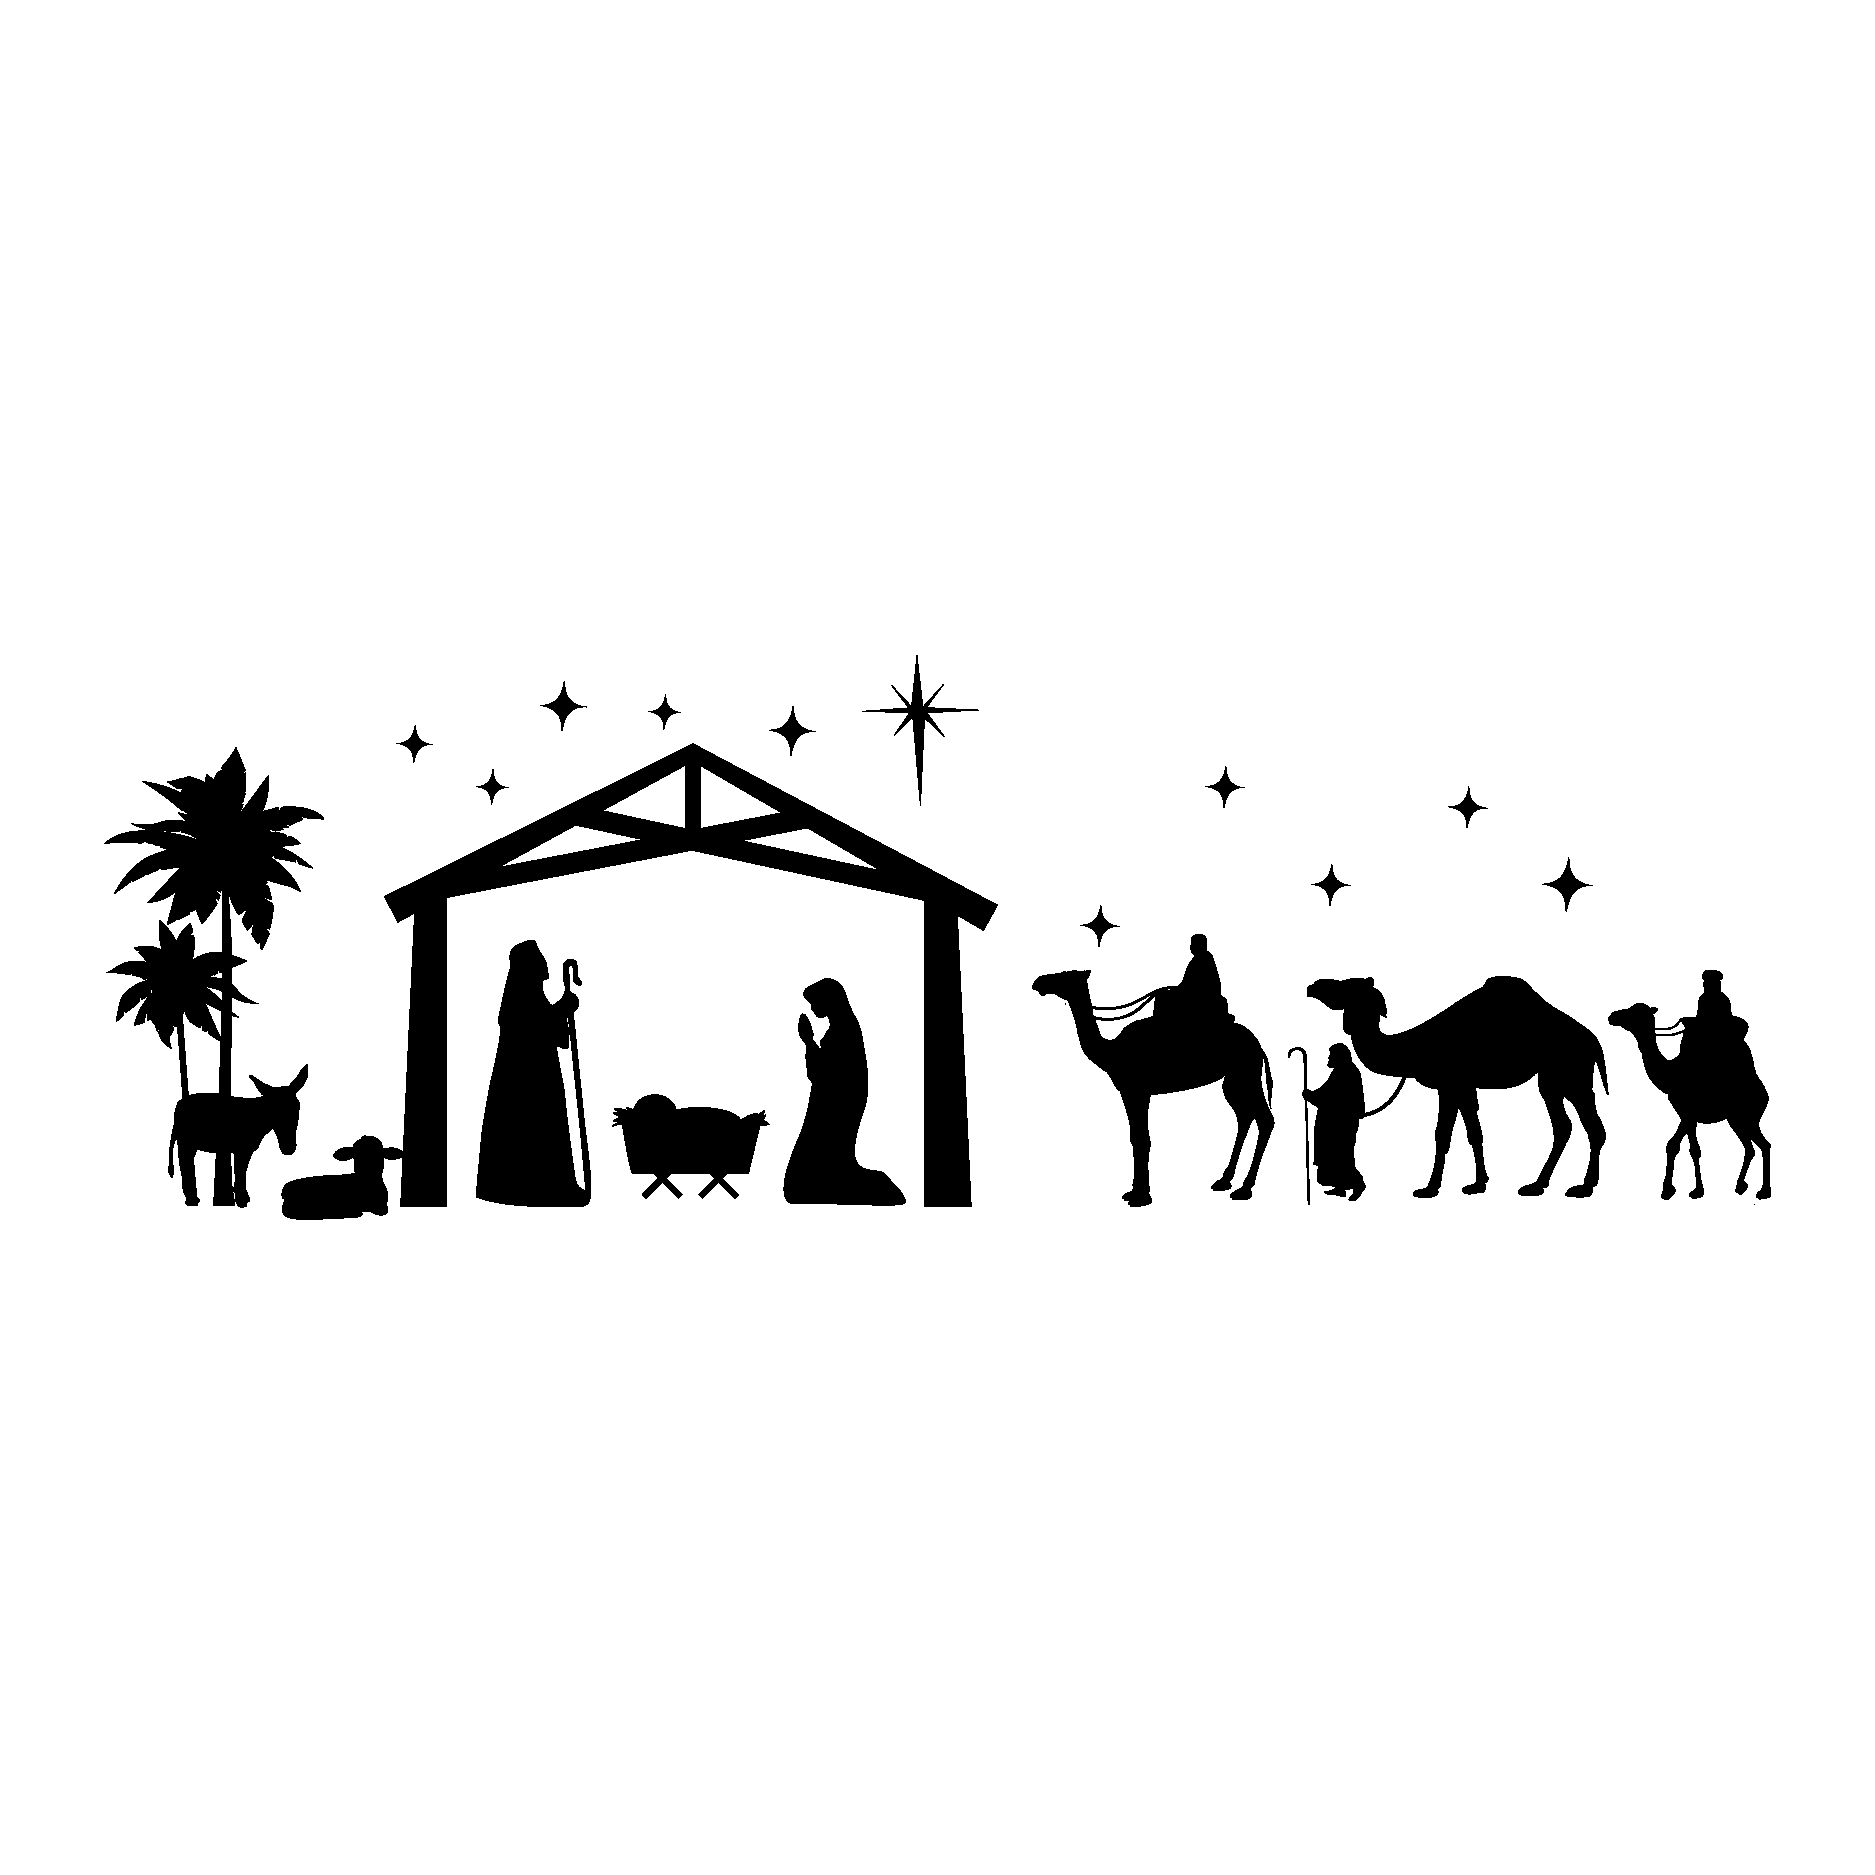 Nativity Wall Quotes Wall Quotes Decal Wallquotes Com